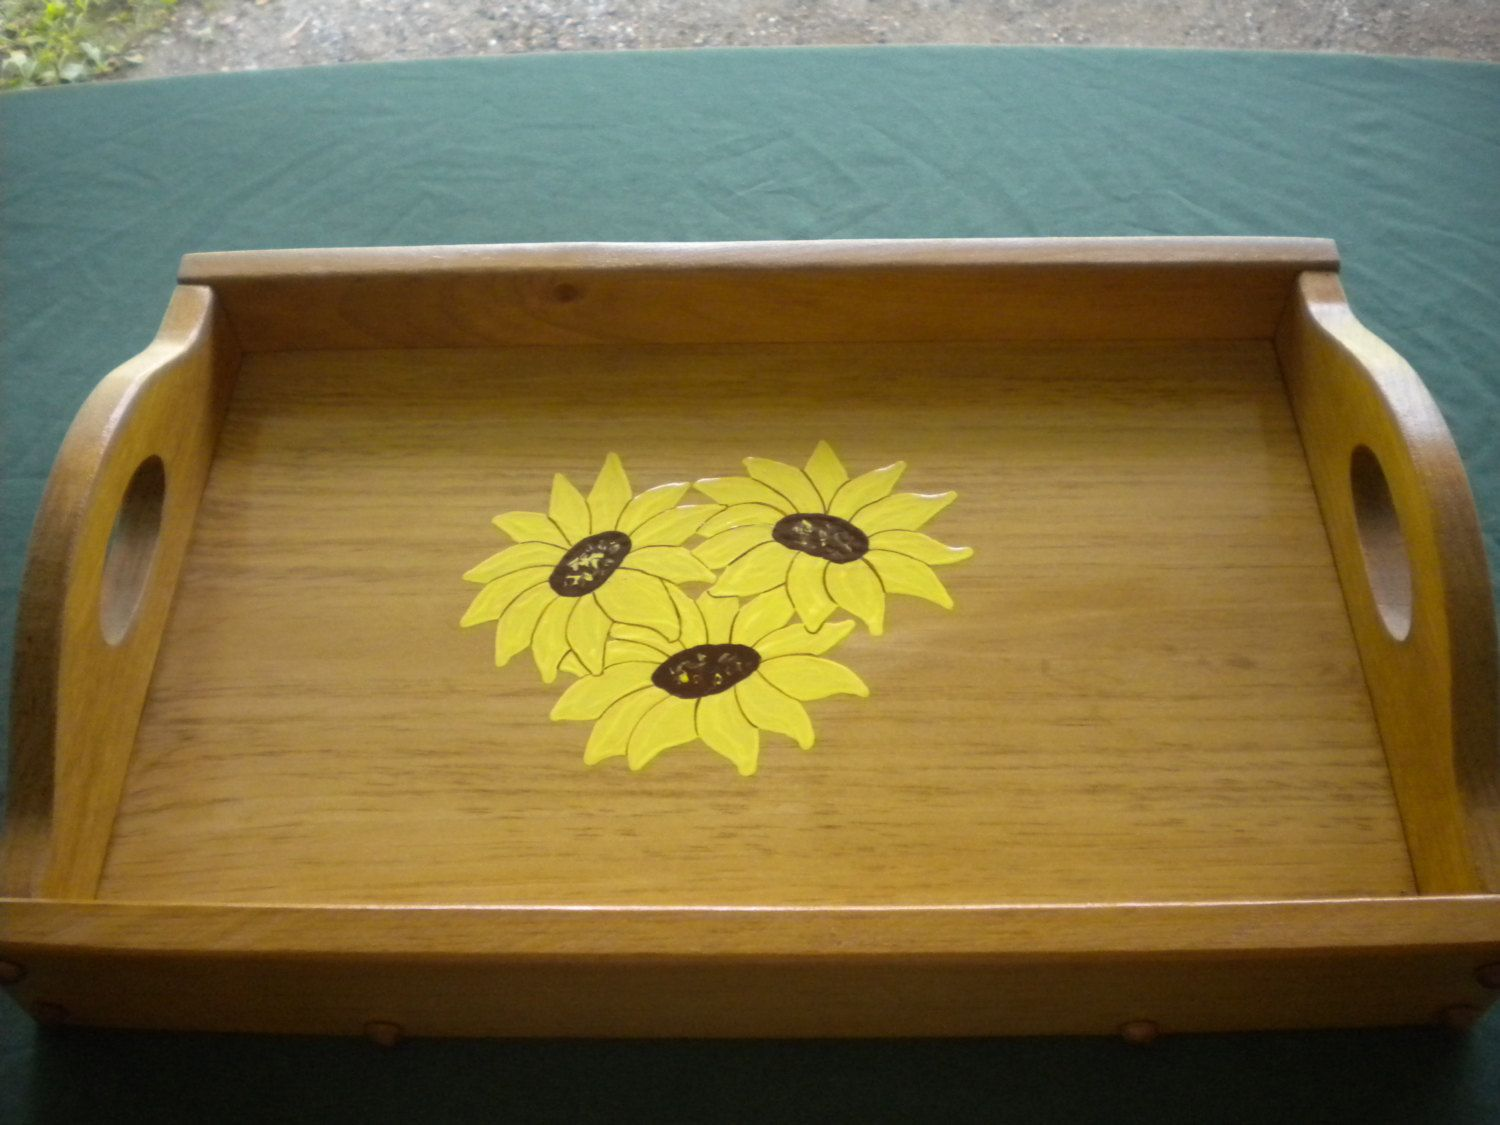 Uncategorized Handmade Wooden Trays large serving tray with a painting of sunflowers handmade wooden by woodnthingsny12534 on etsy